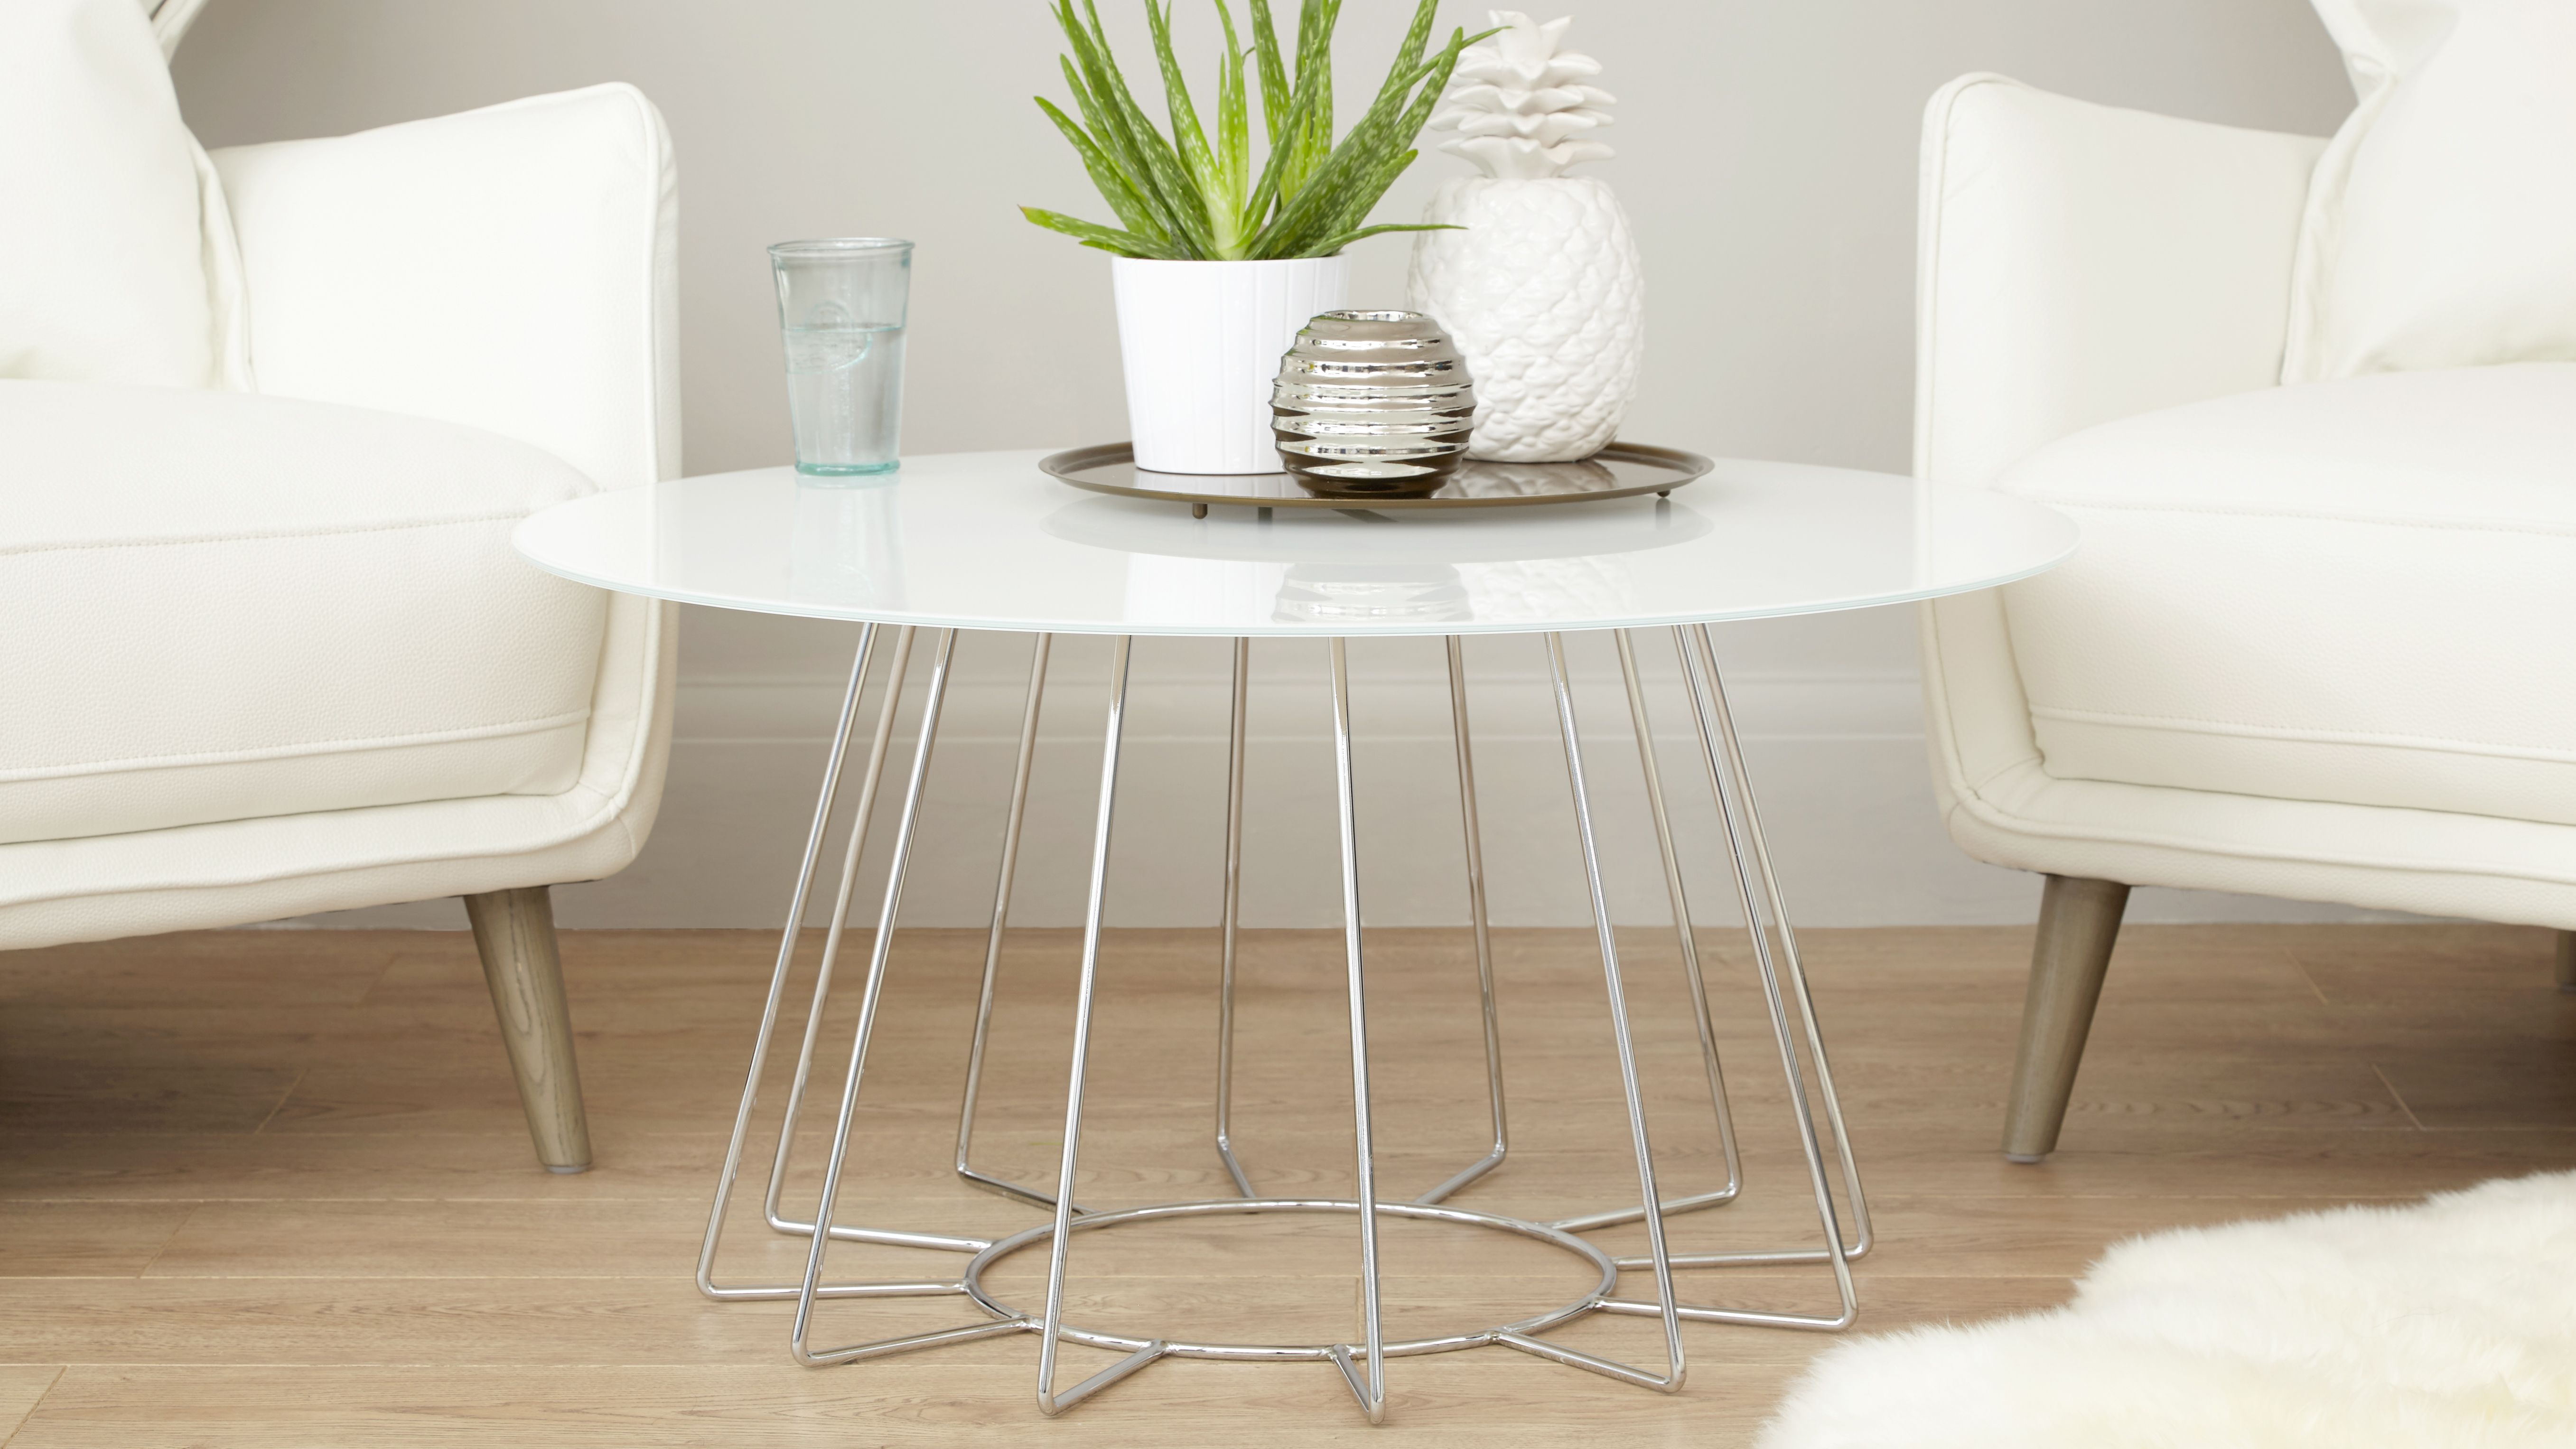 Orbit White Glass And Chrome Coffee Table From Danetti White Glass Coffee Table Glass Coffee Table Coffee Table [ 3053 x 5428 Pixel ]